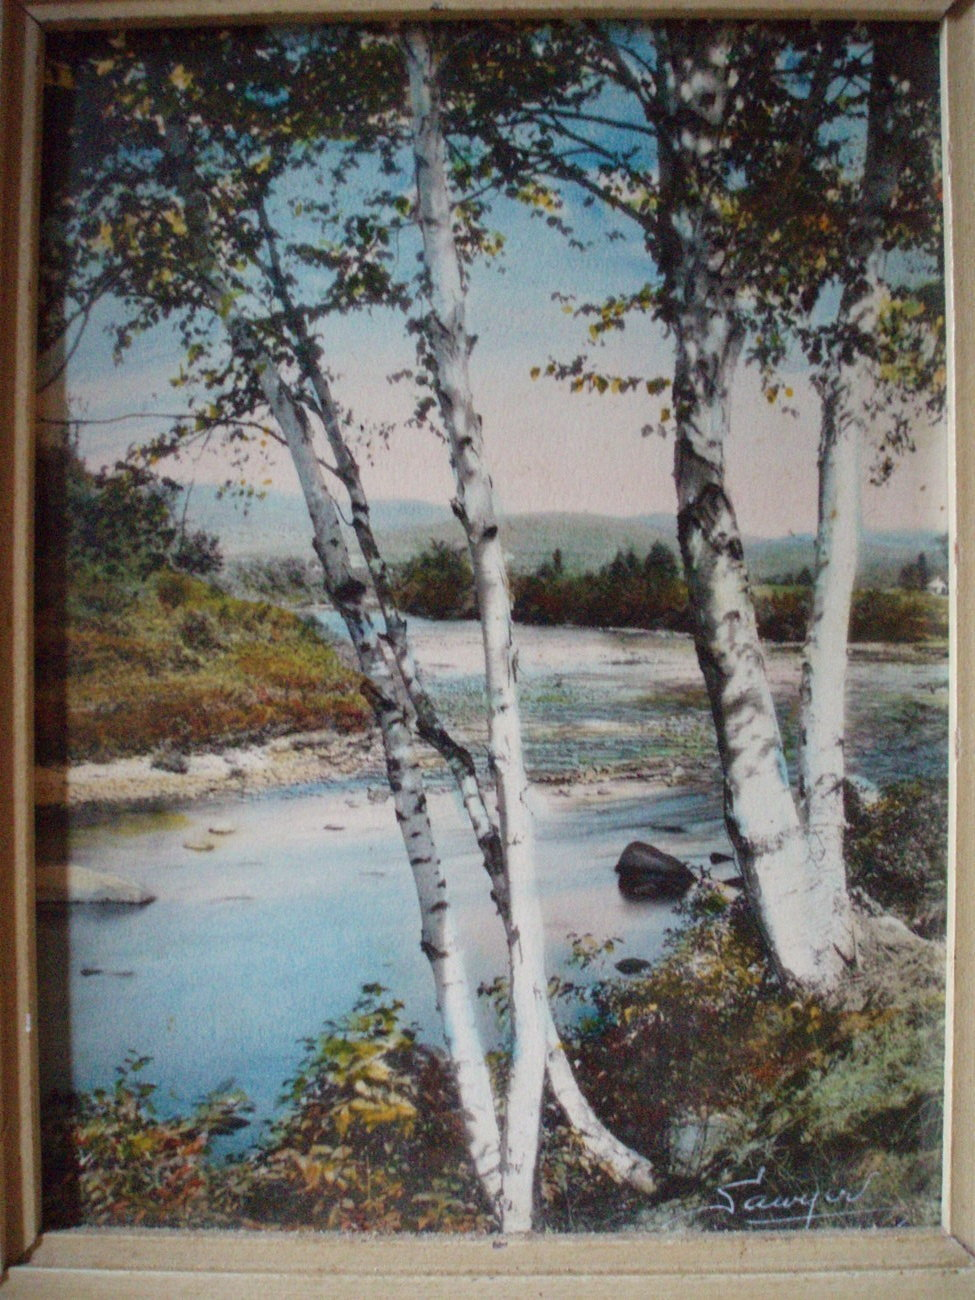 Charles H Sawyer hand painted photograph Melody